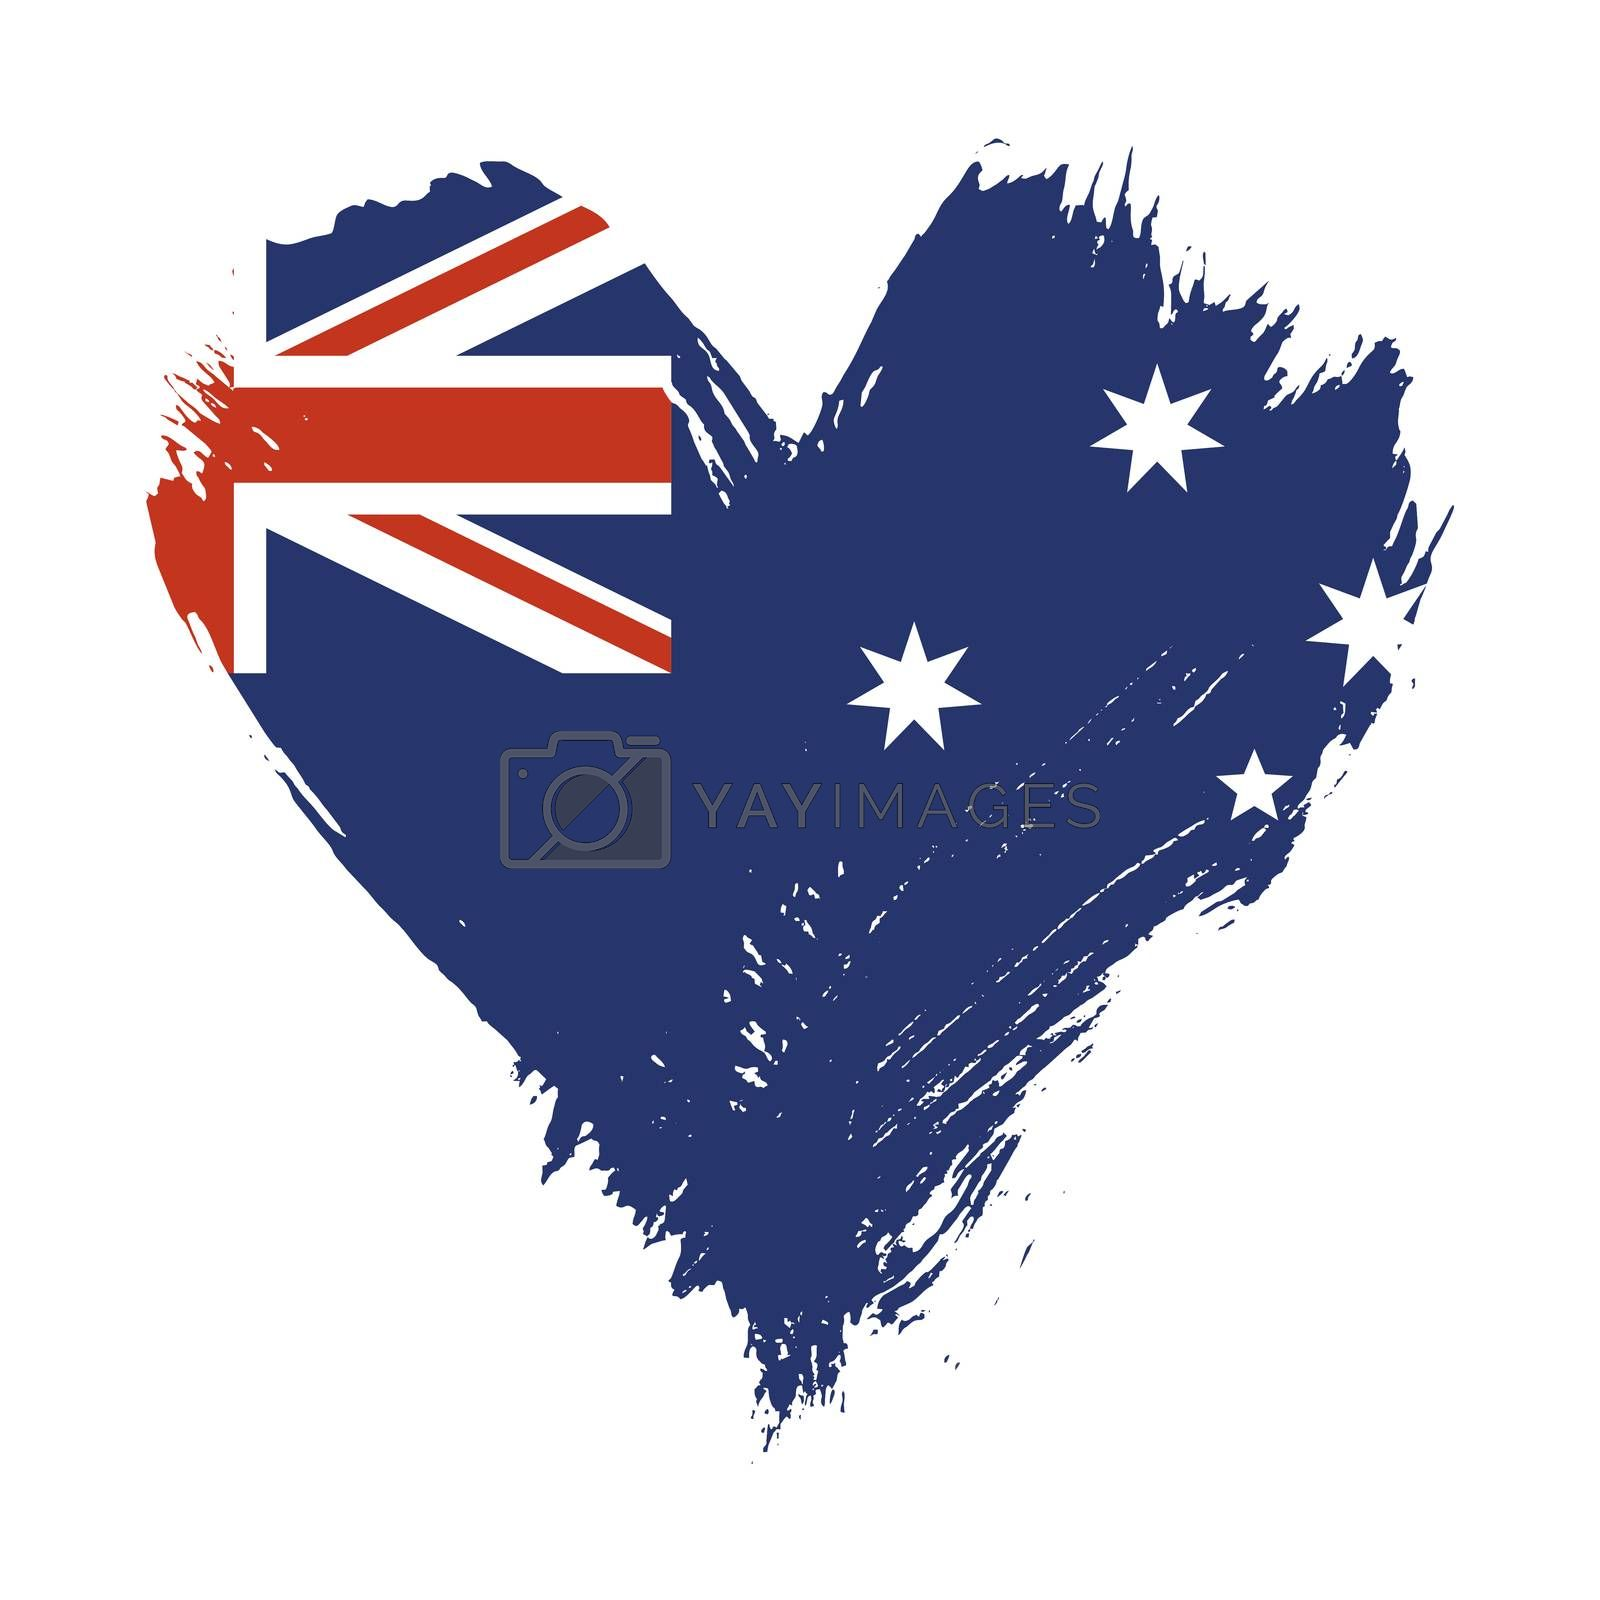 Grunge brushstroke painted illustration of heart shaped distressed Australian flag isolated on white background